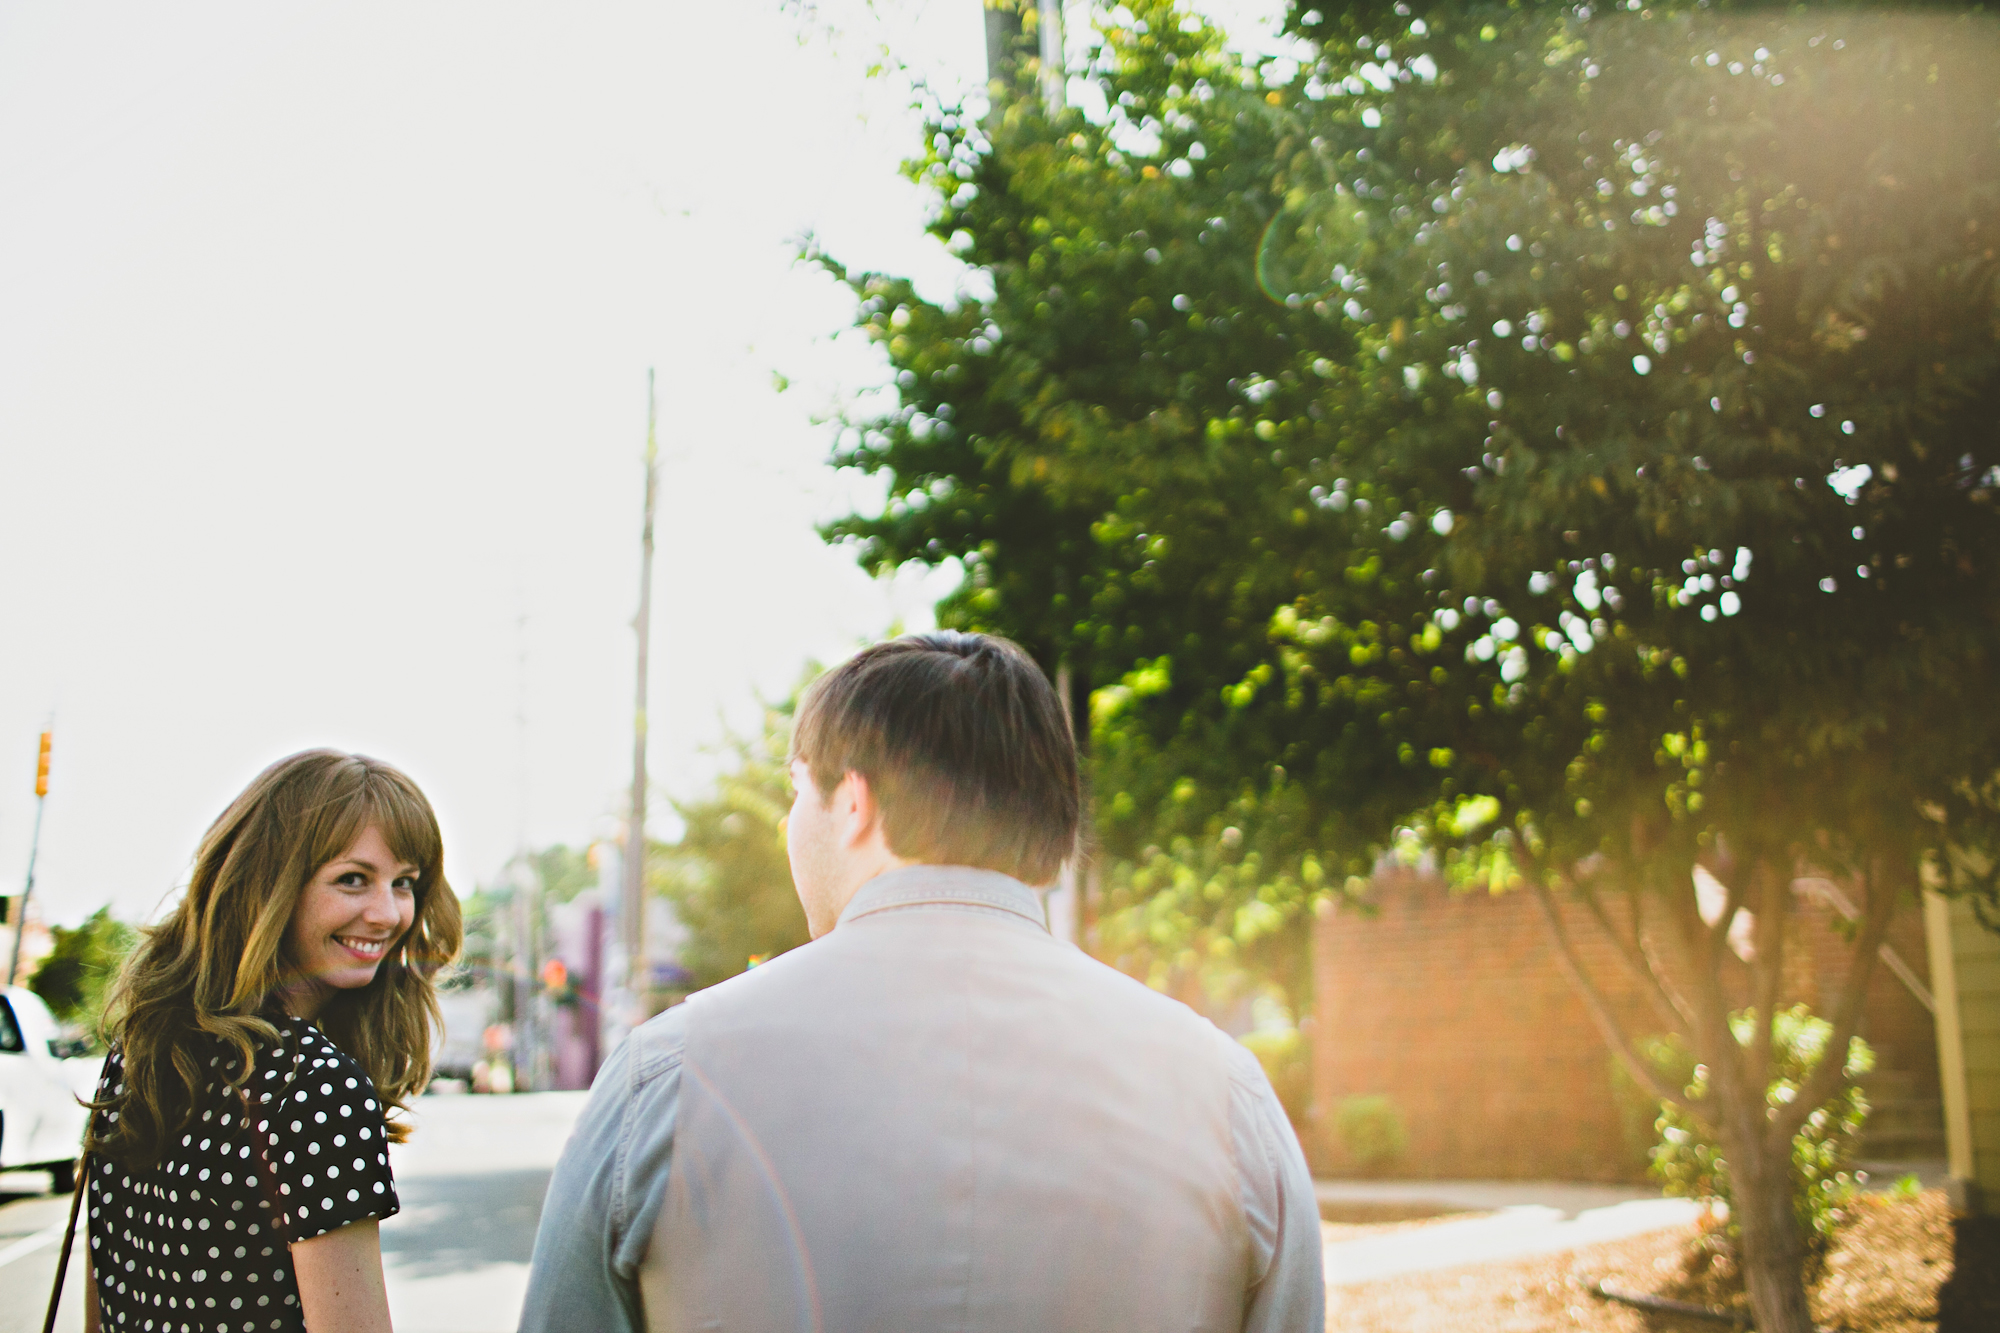 EmilyChidesterPhotography_Jena&Josh_Charlotte_NorthDavidson_Engagement-81